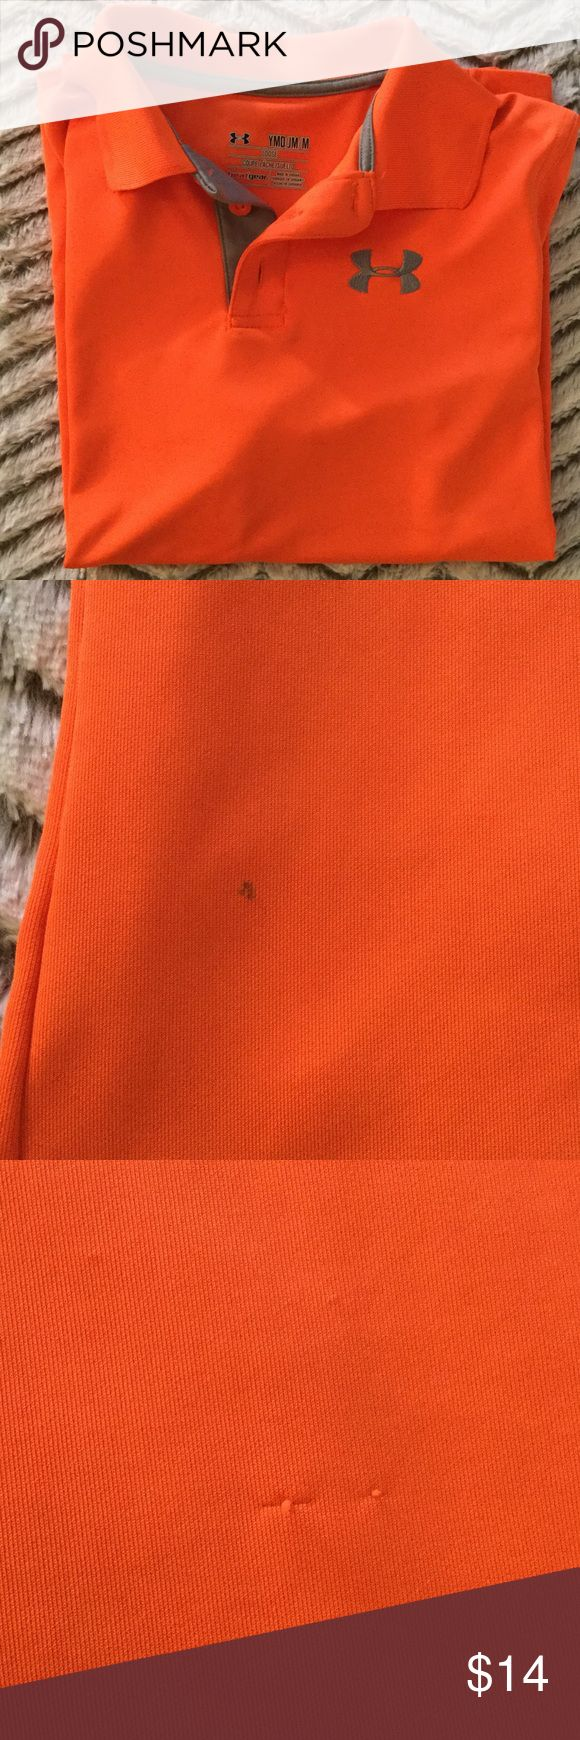 Neon Orange Under Armou Boys heatgear Polo Neon orange boys Under Armour heatgear Polo with gray branding. Has small pen mark and a few pulls as shown in picture, but still a. Dry sharp looking shirt for your little man. This material dries quick, is soft and light weight and doesn't wrinkle. Under Armour Shirts & Tops Polos